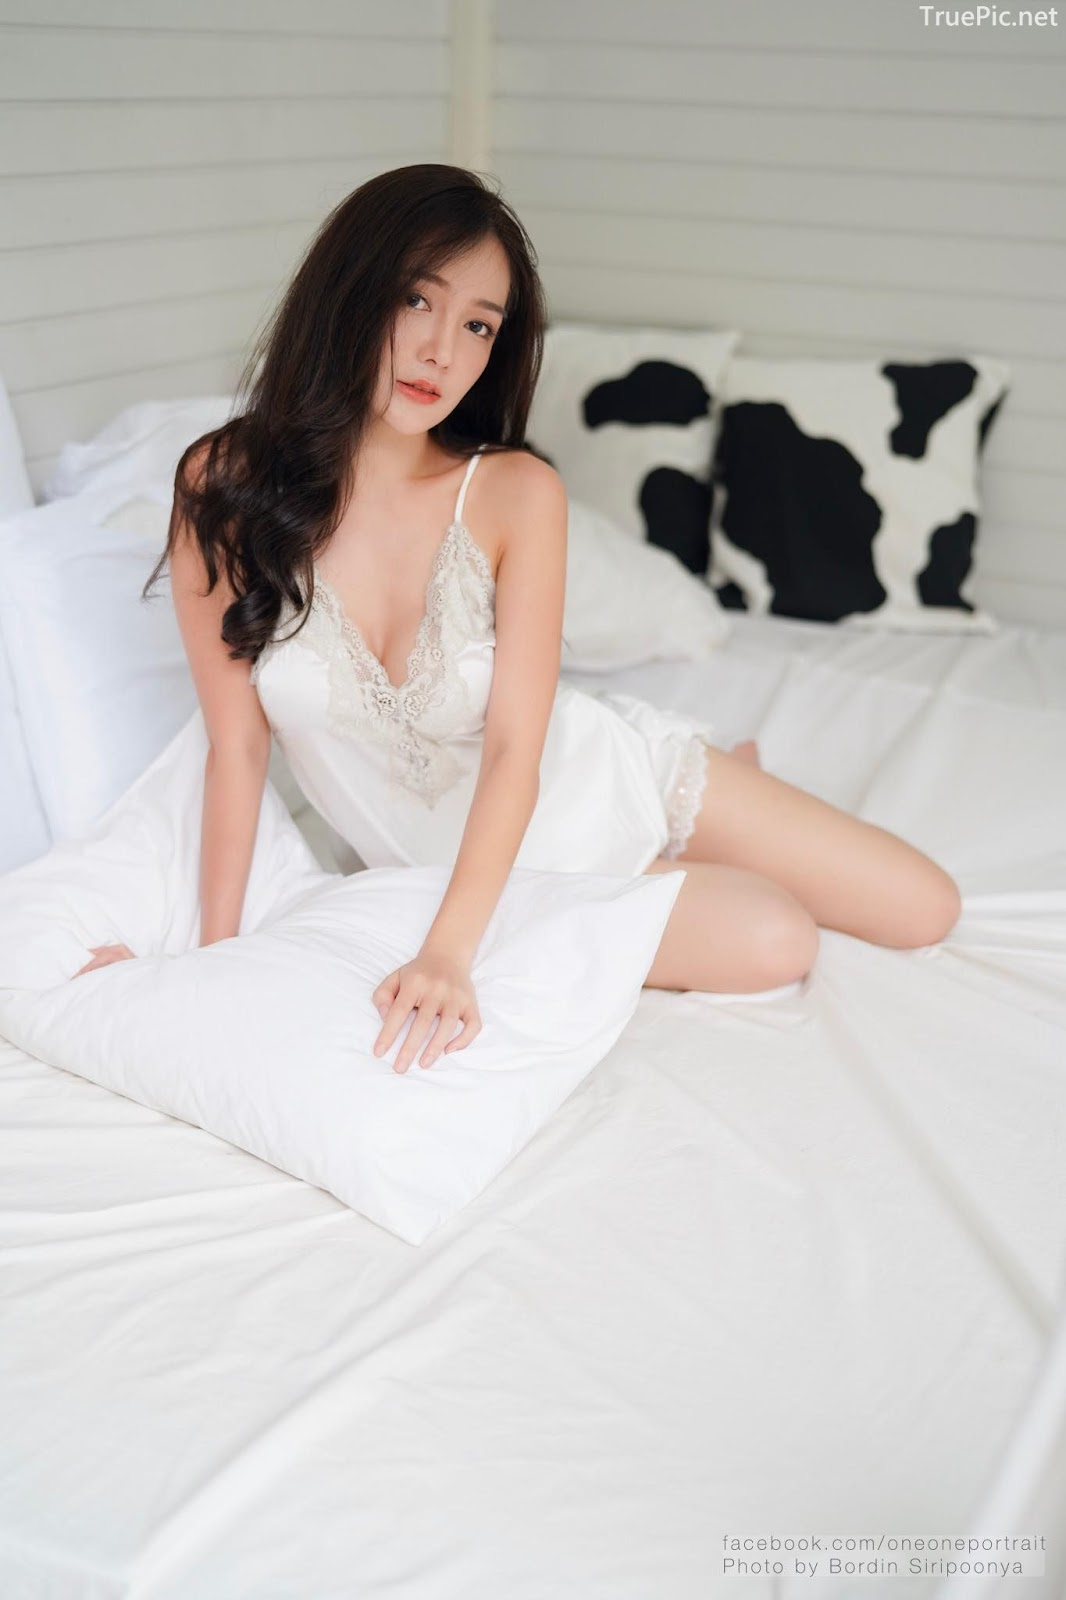 Thailand sexy model Rossarin Klinhom - Photo album Oversleeping - Picture 1